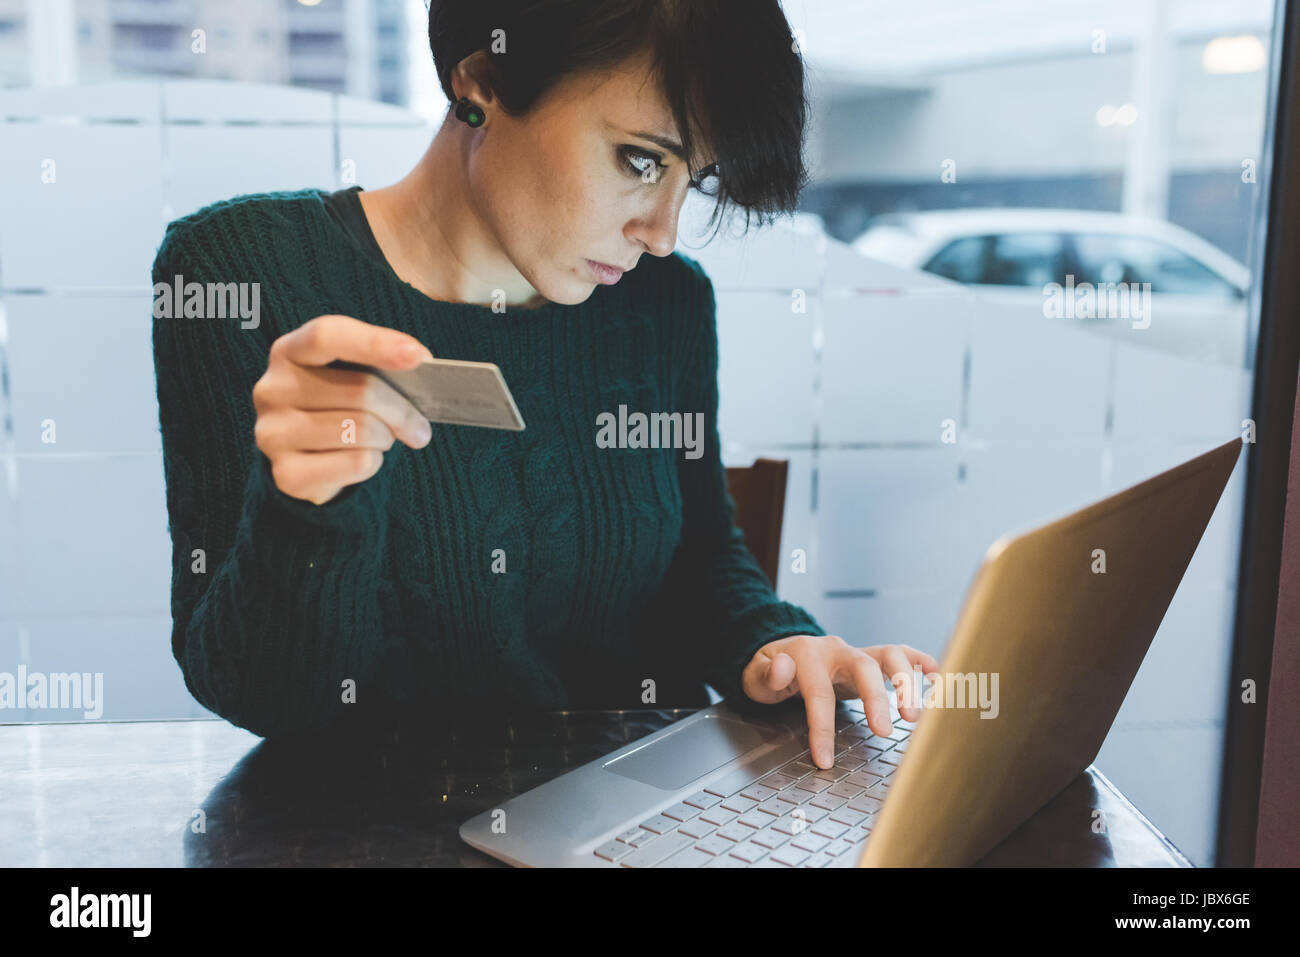 Woman in cafe making credit card payment on laptop - Stock Image